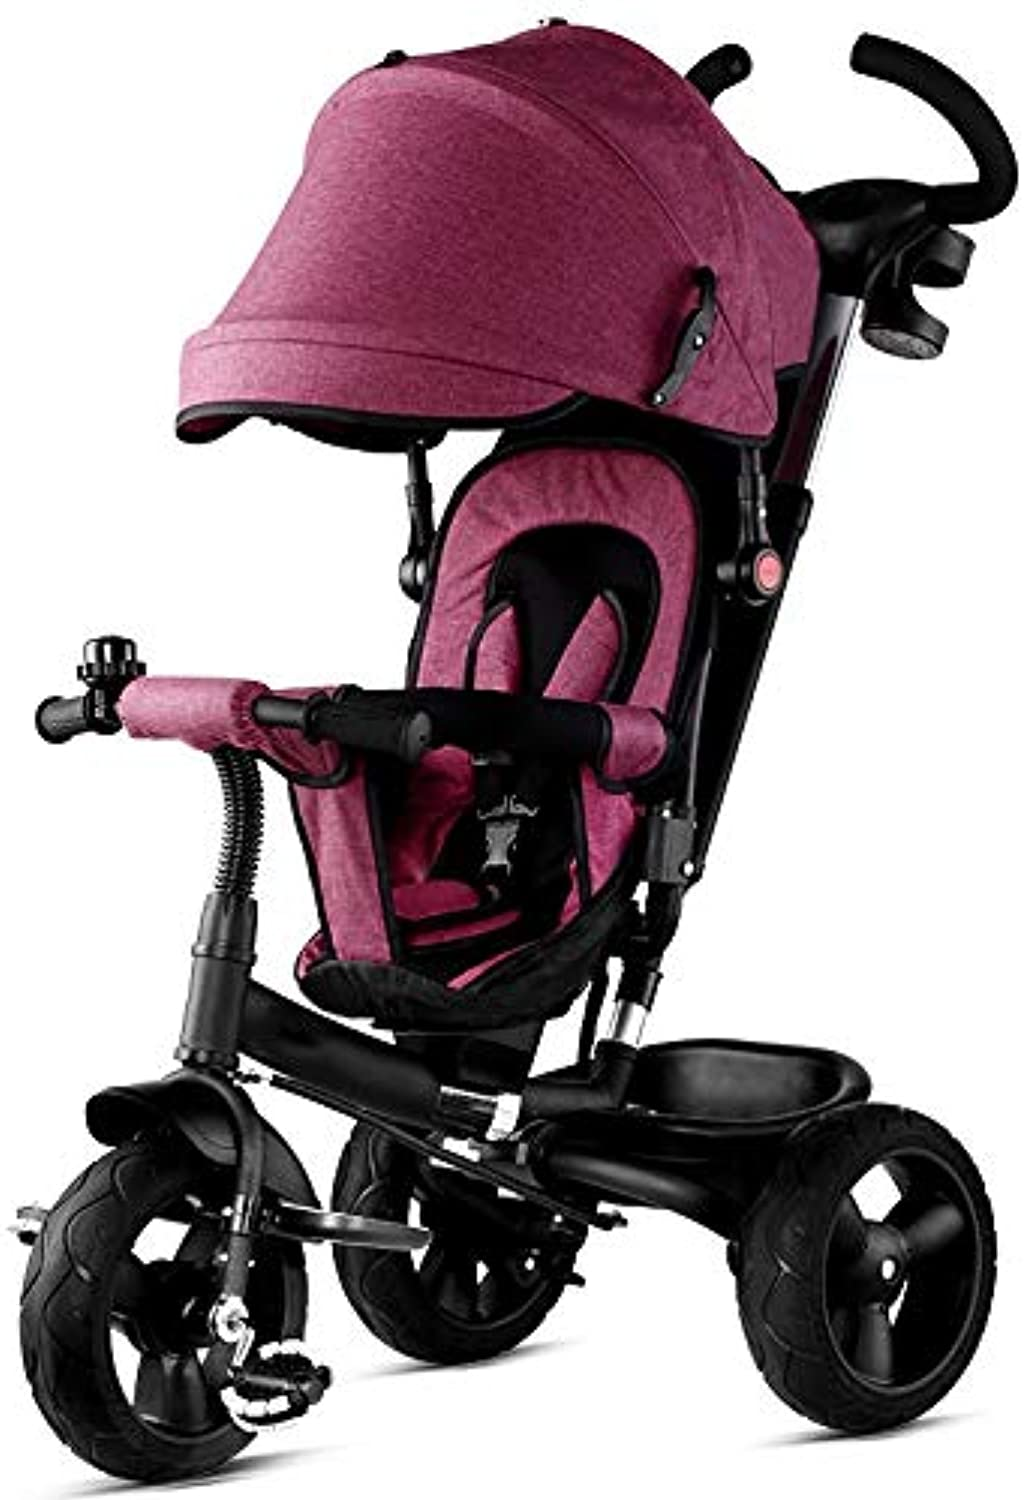 almacén al por mayor YUMEIGE triciclos Triciclo para Niños 1-6 1-6 1-6 años de Edad Regalo de cumpleaños TricicloCochegue 25 kg Cochecitos para Niños Toddler Trike con toldo (Color  Morado) Disponible  100% garantía genuina de contador